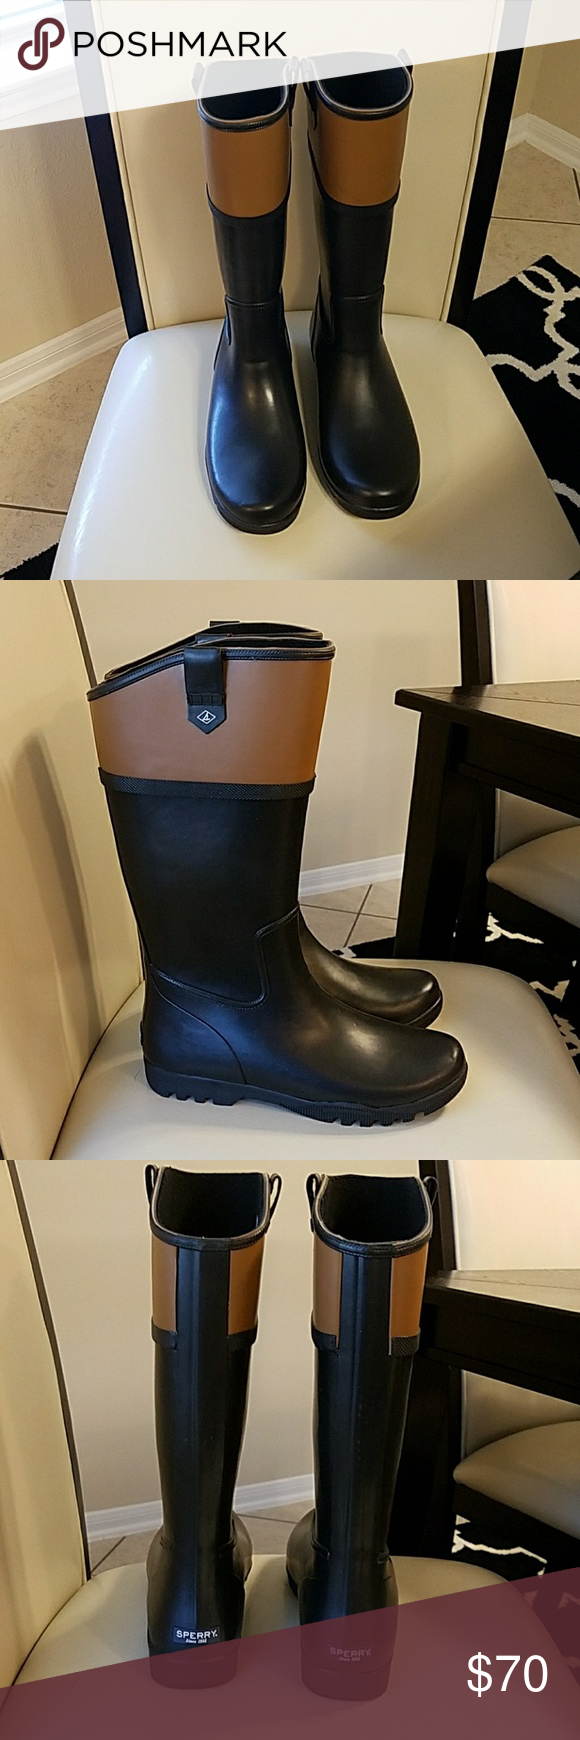 5543a0bfe55 New Nellie Kate Black Women Rain Boots New with original packing never worn Rubber  Sperry Rain Boots with black and brown Sperry Top-Sider Shoes Winter ...